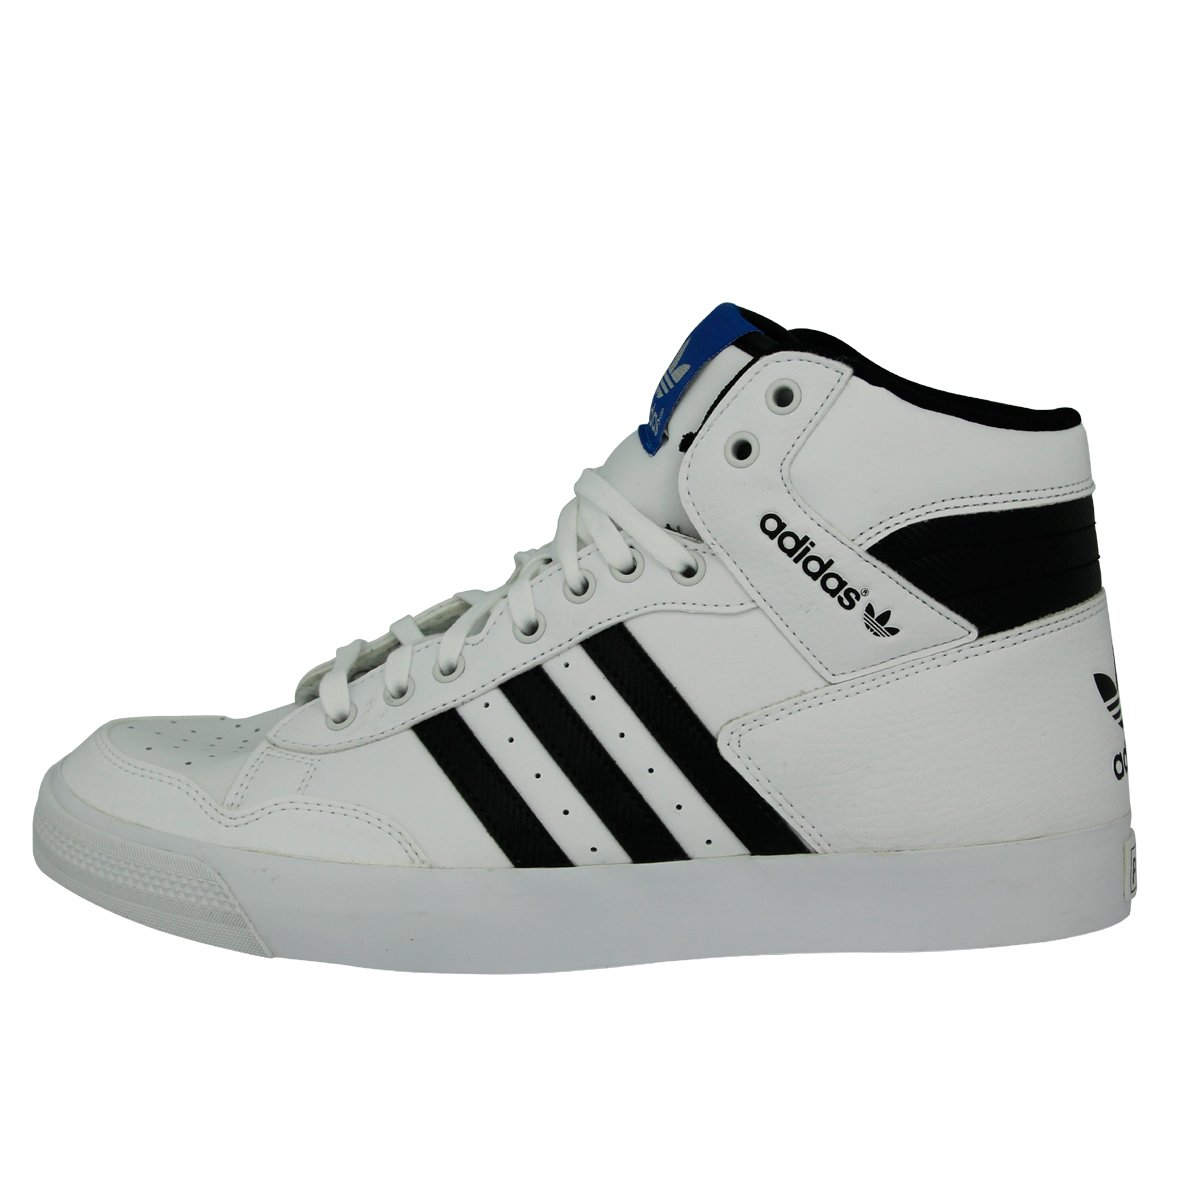 adidas Originals Herren PRO Conference High top